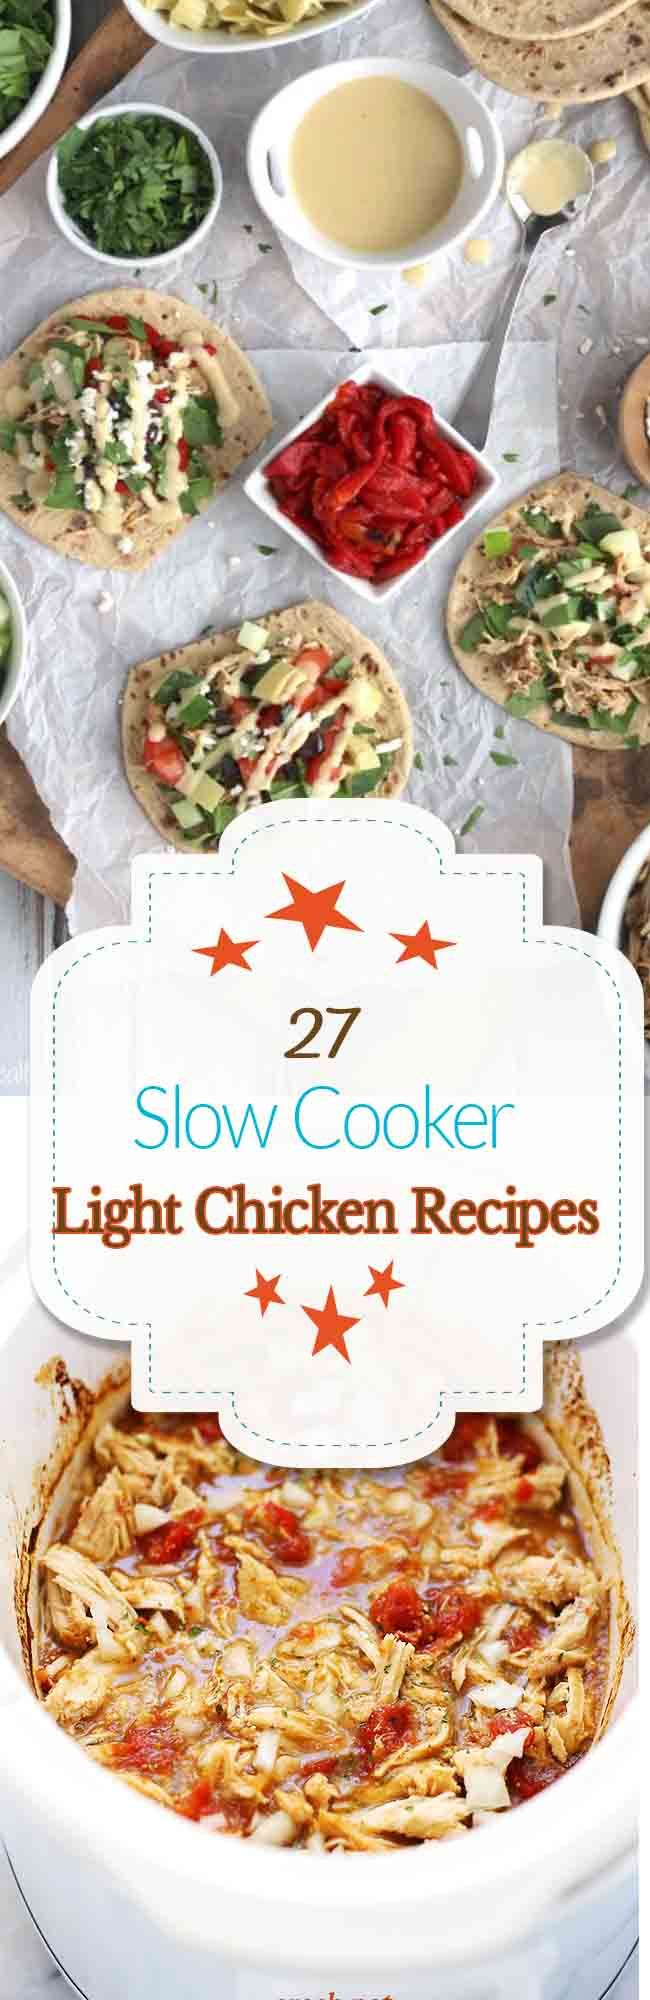 26 Light (Yet Flavor Packed!) Chicken Recipes For The Slow Cooker